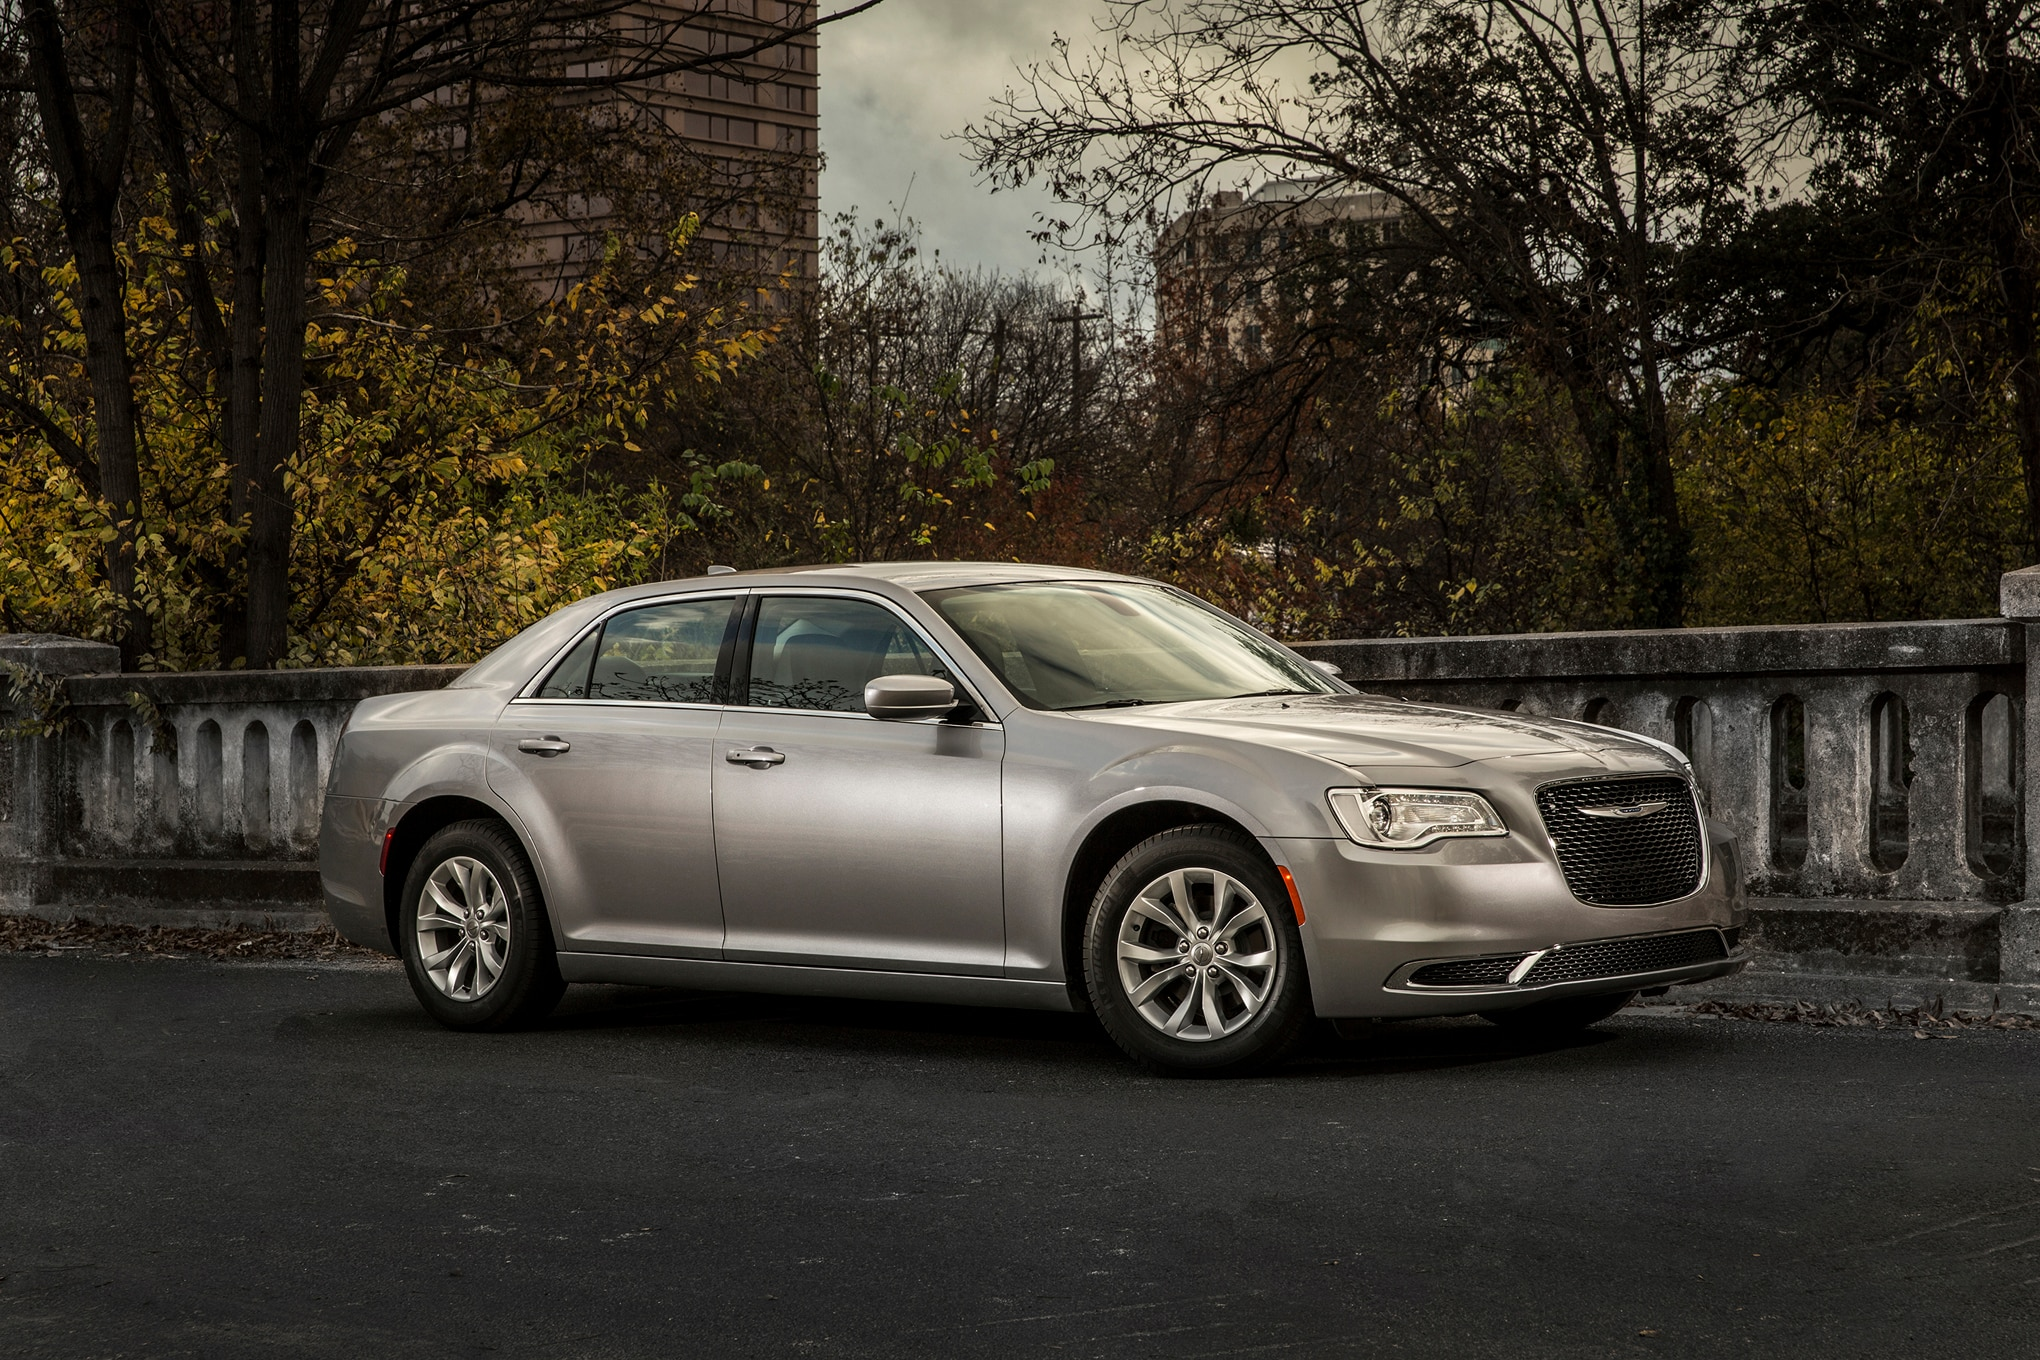 2016 chrysler 300 town country add 90th anniversary edition models. Black Bedroom Furniture Sets. Home Design Ideas